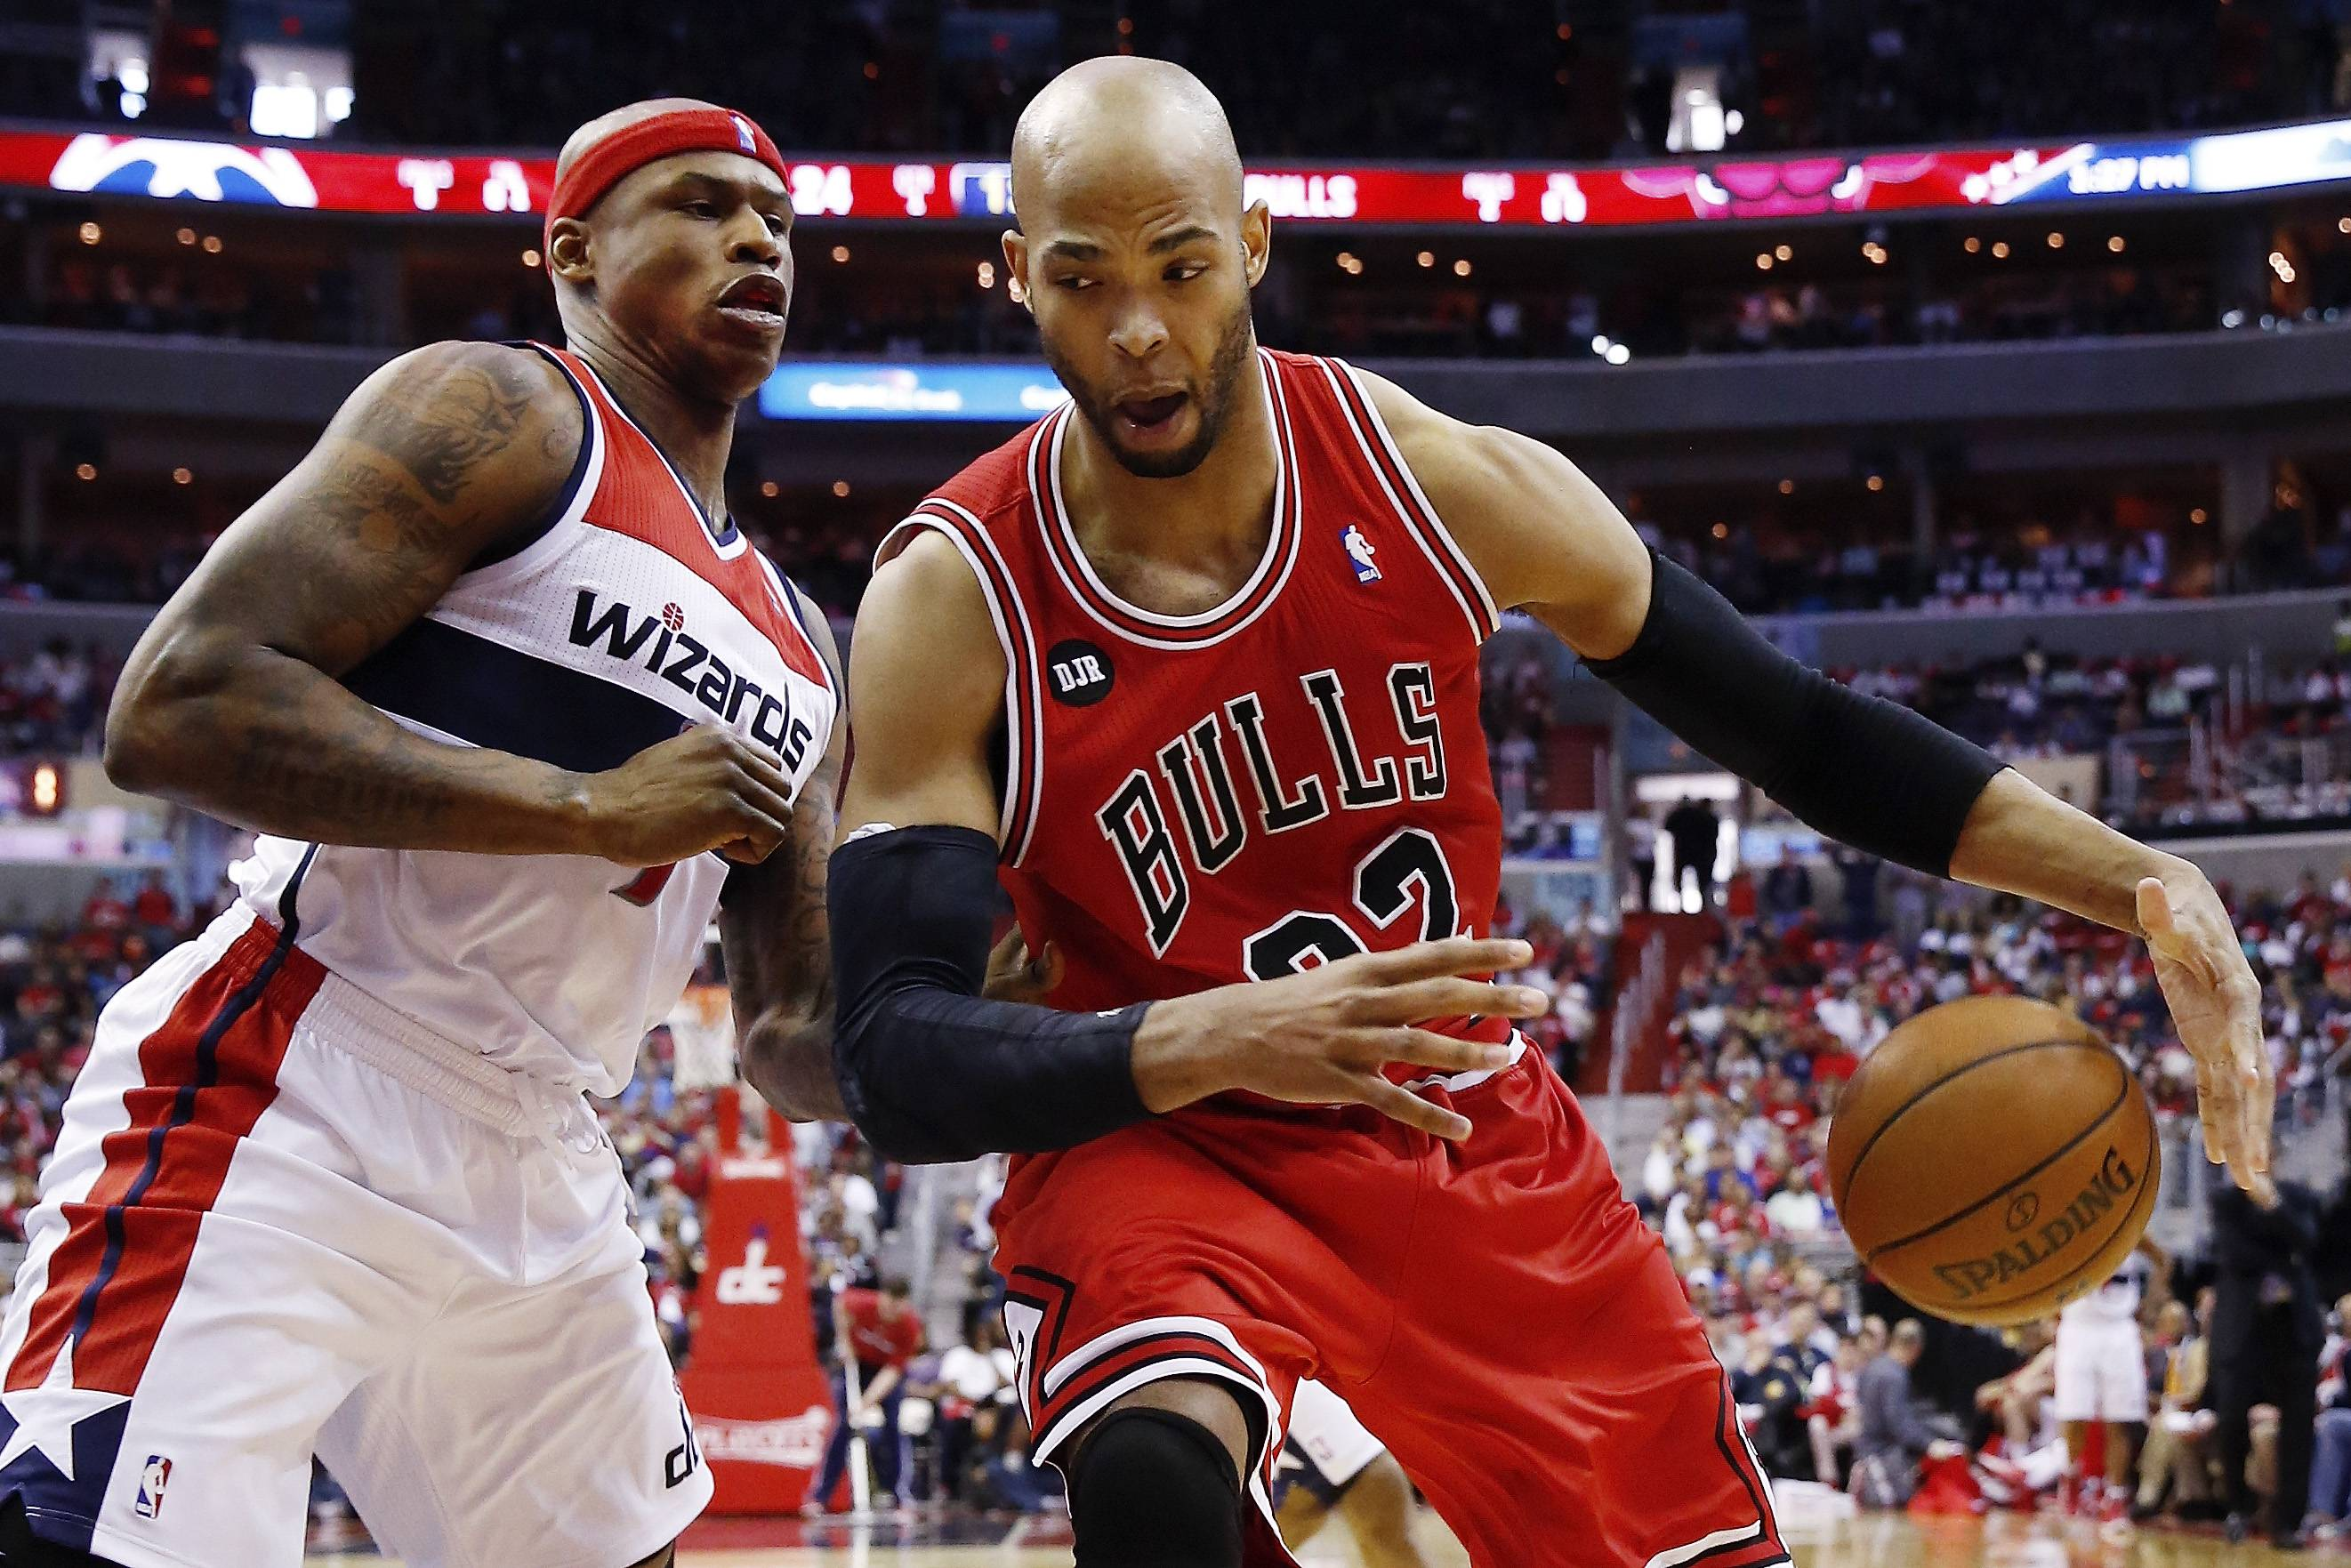 Bulls forward Taj Gibson drives past the Wizards' Al Harrington on his way to 32 points in 32 minutes off the bench in Sunday's loss at Washington.